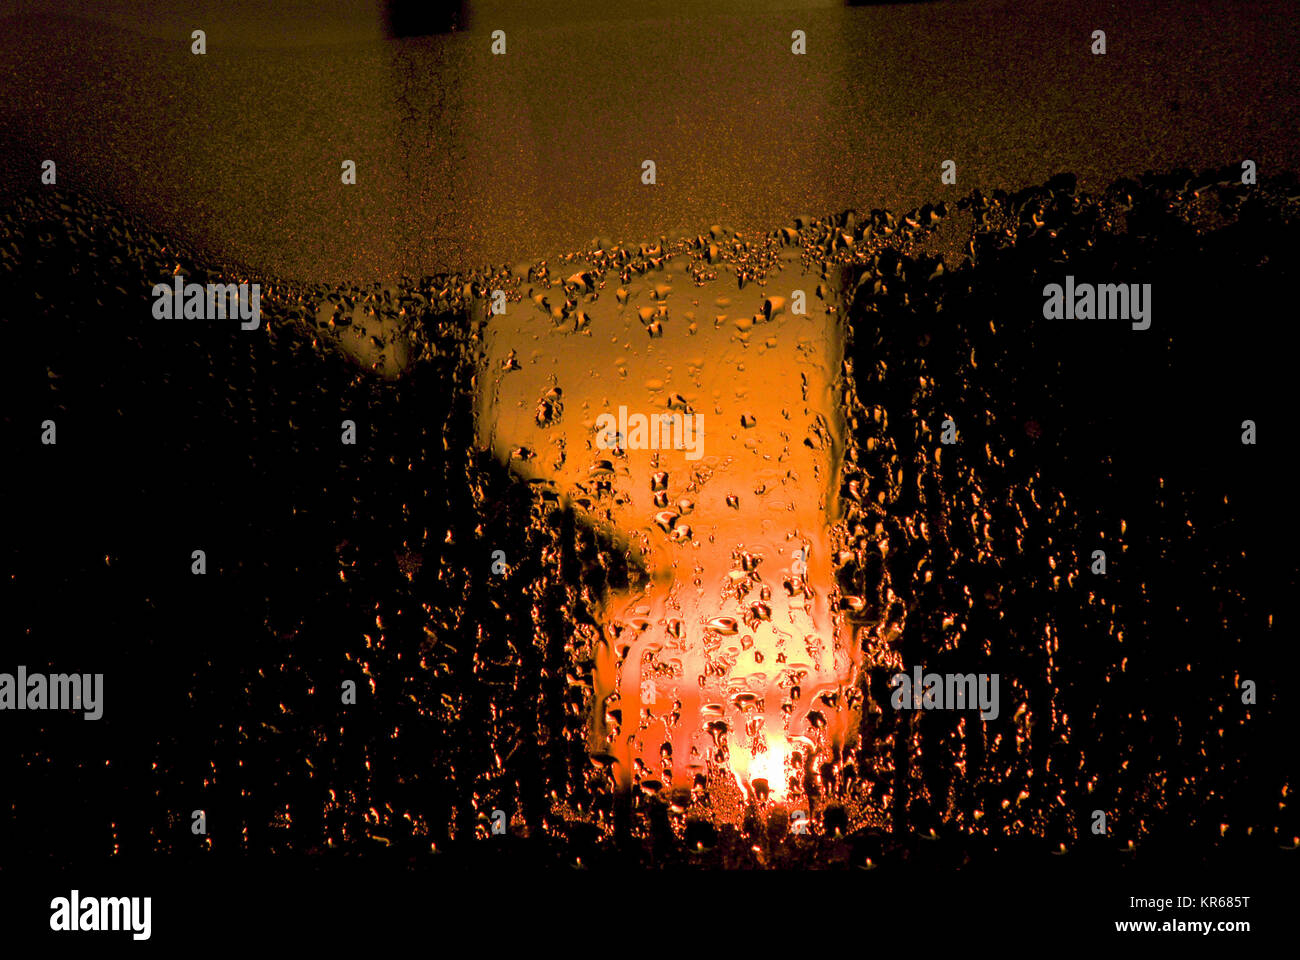 Portland, Dorset. 19th December 2017 - The sun sets over Lyme Bay, seen through raindrops on a window-pane in Fortuneswell, - Stock Image